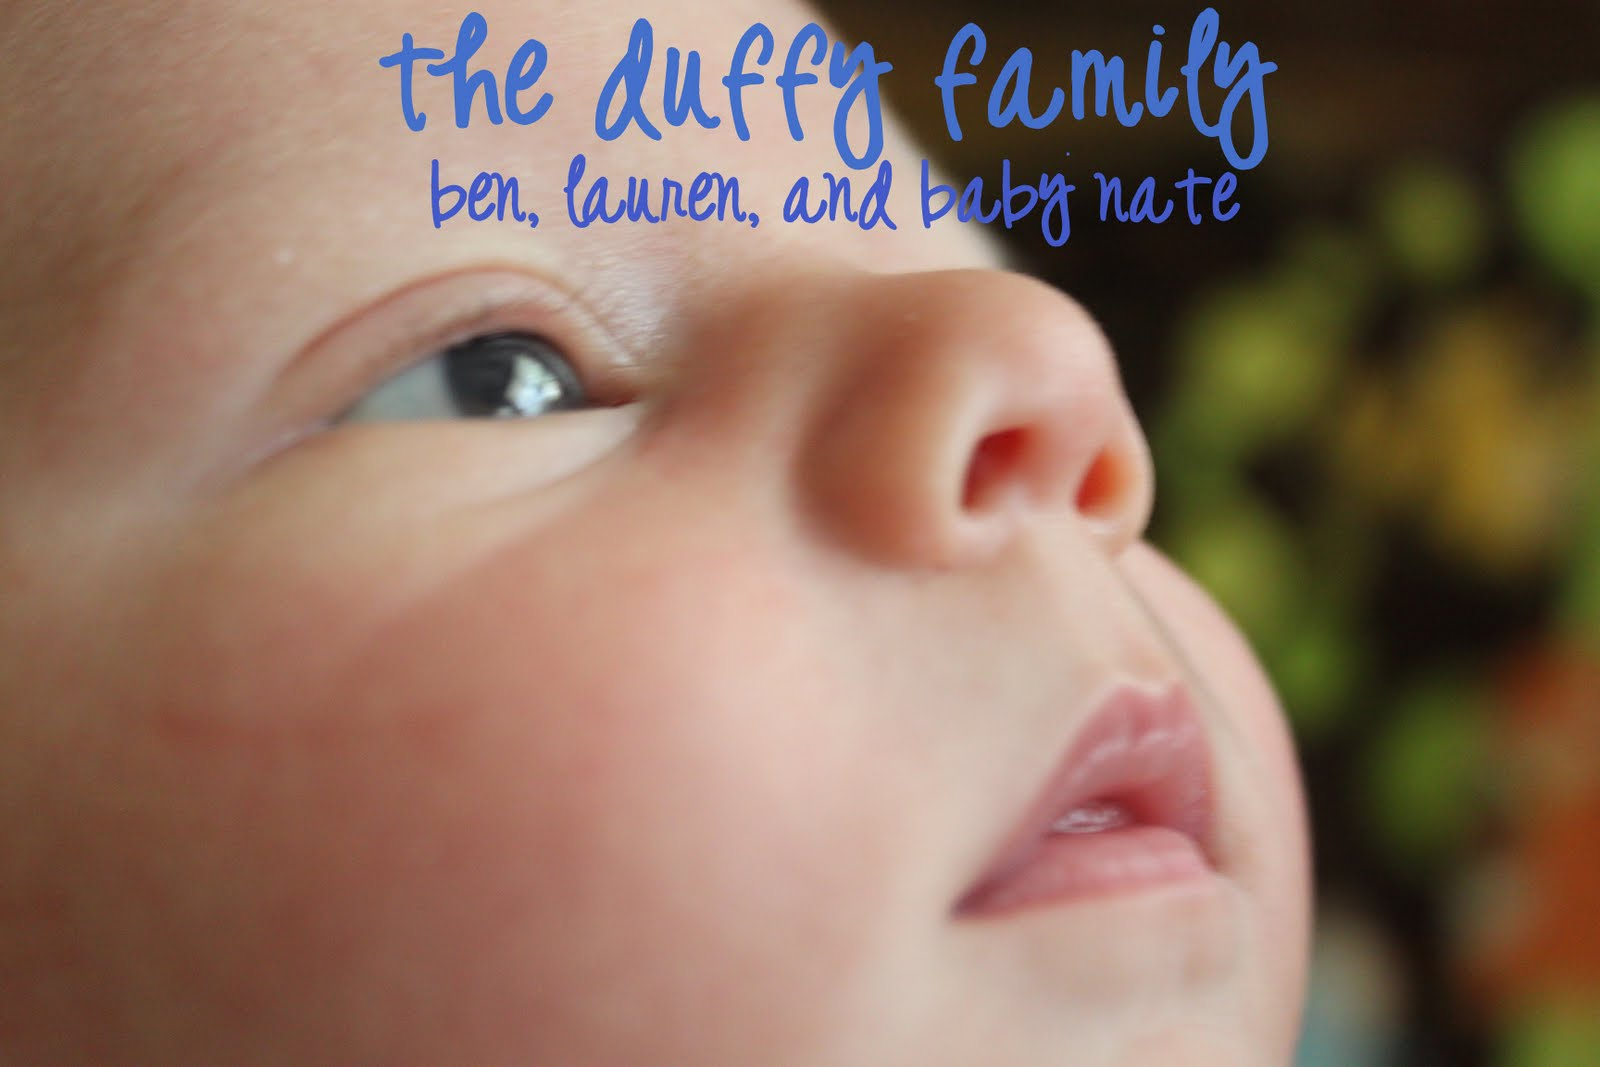 The Duffy Family